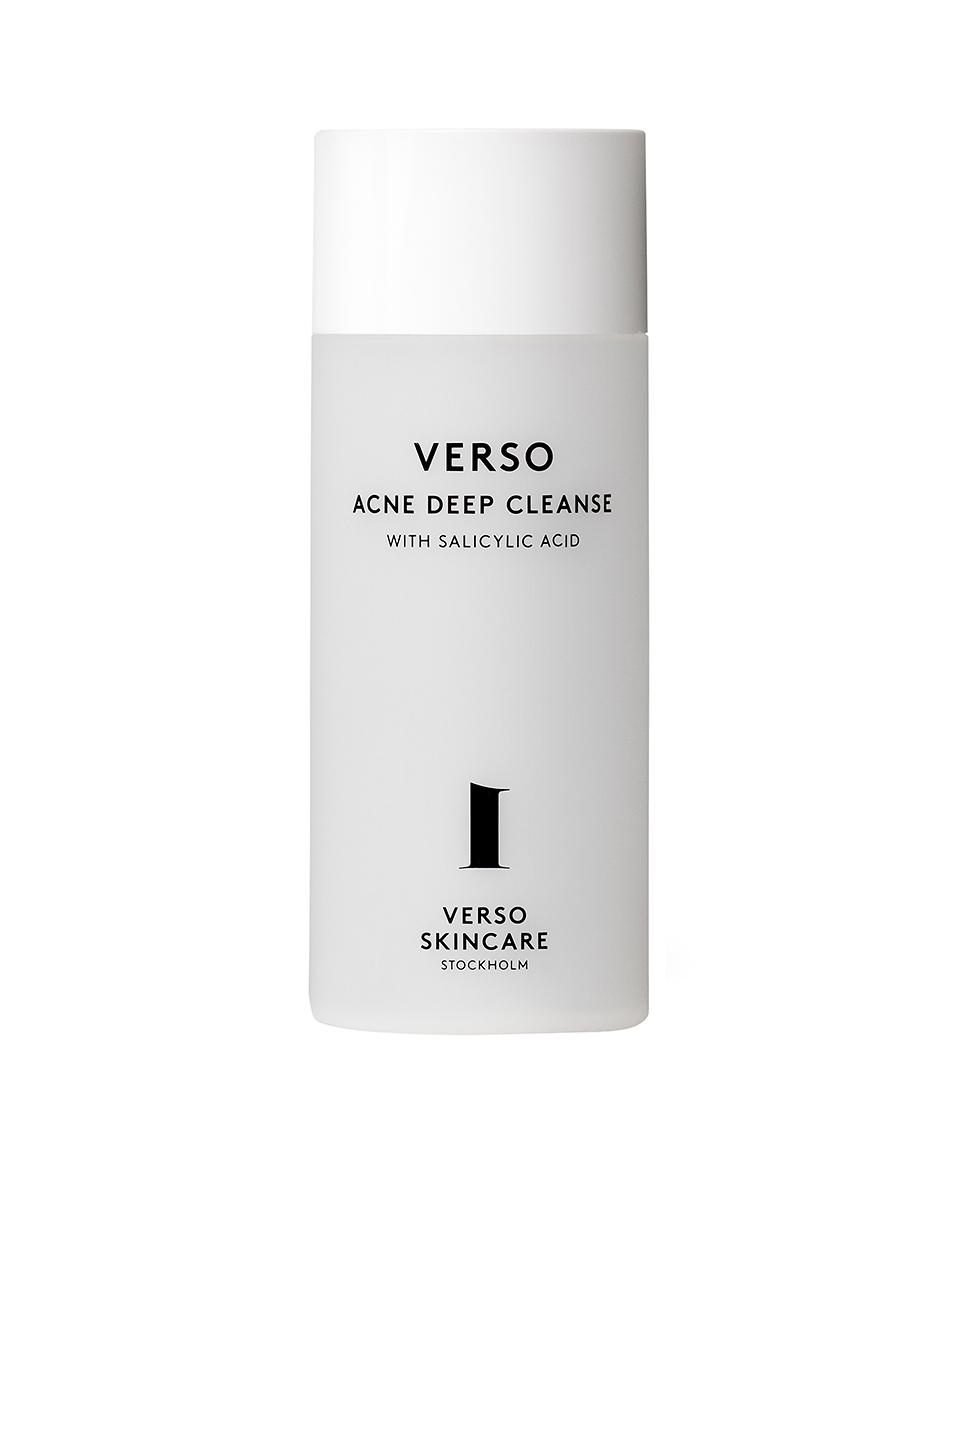 Verso Skincare Acne Deep Cleanse In N,a